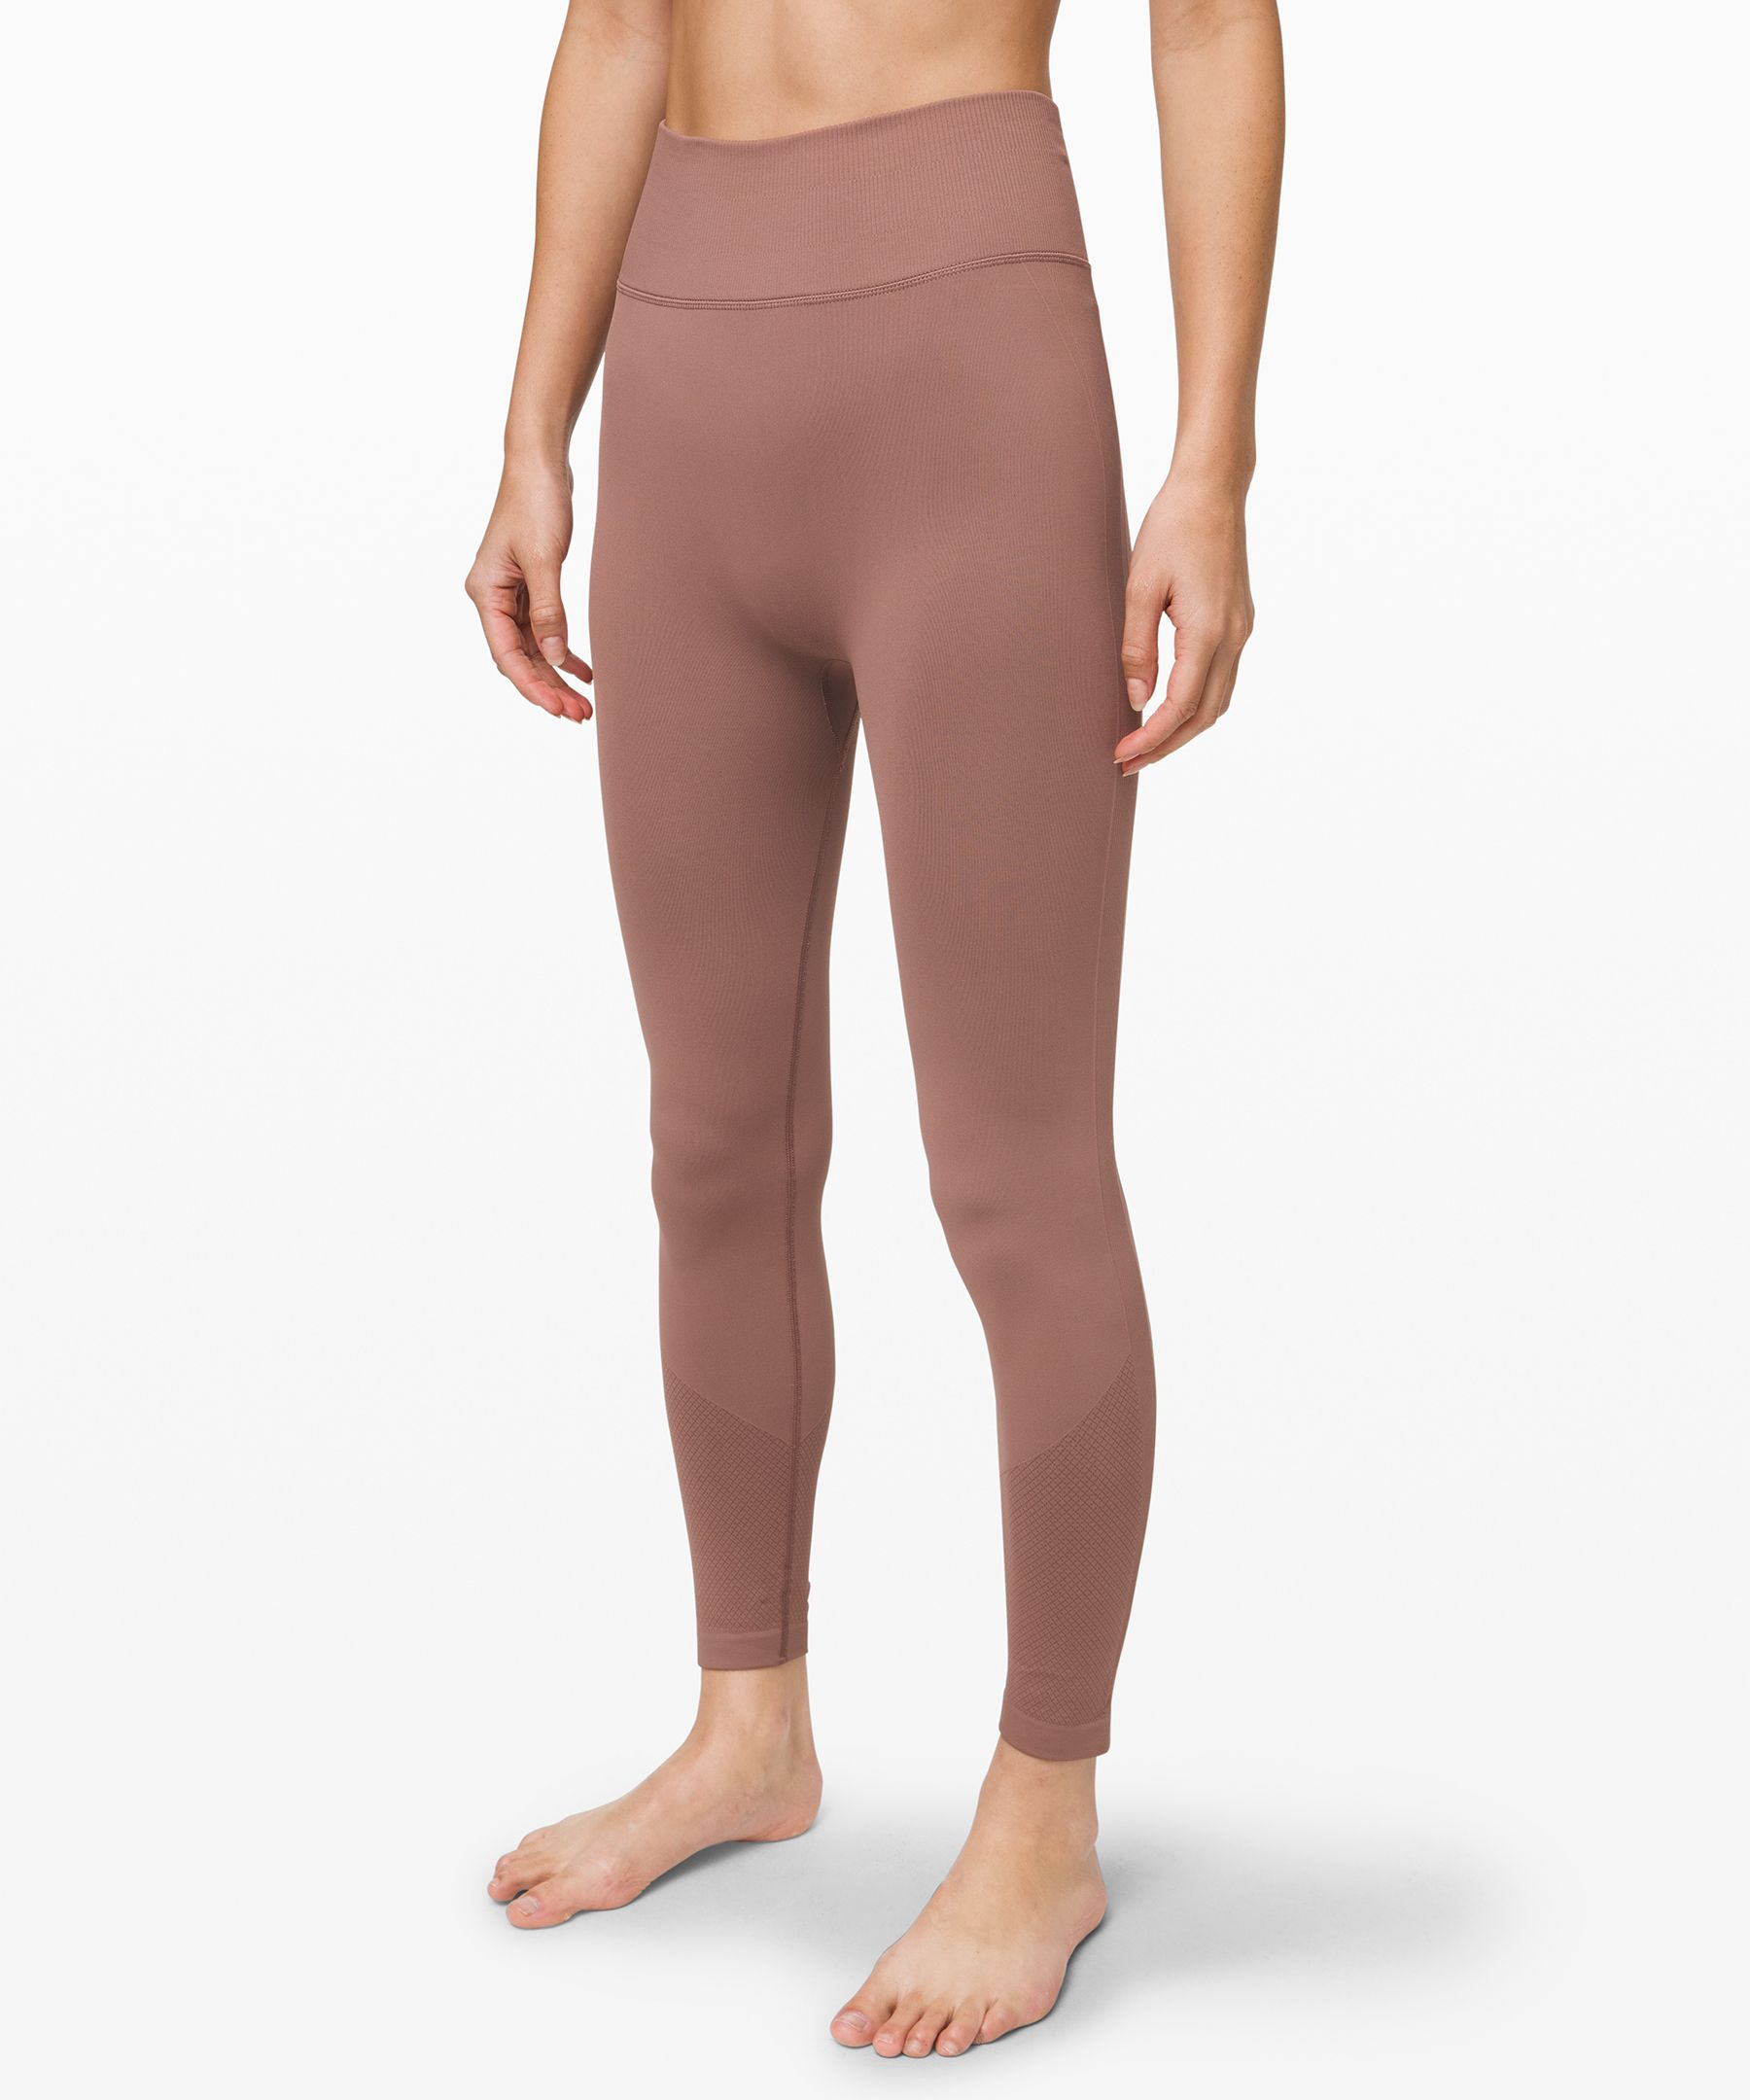 Take time to train in these  soft and simple tights.  Minimal seams and no pockets  give them a smooth fit that\\\'s  extra comfortable during floor  work.